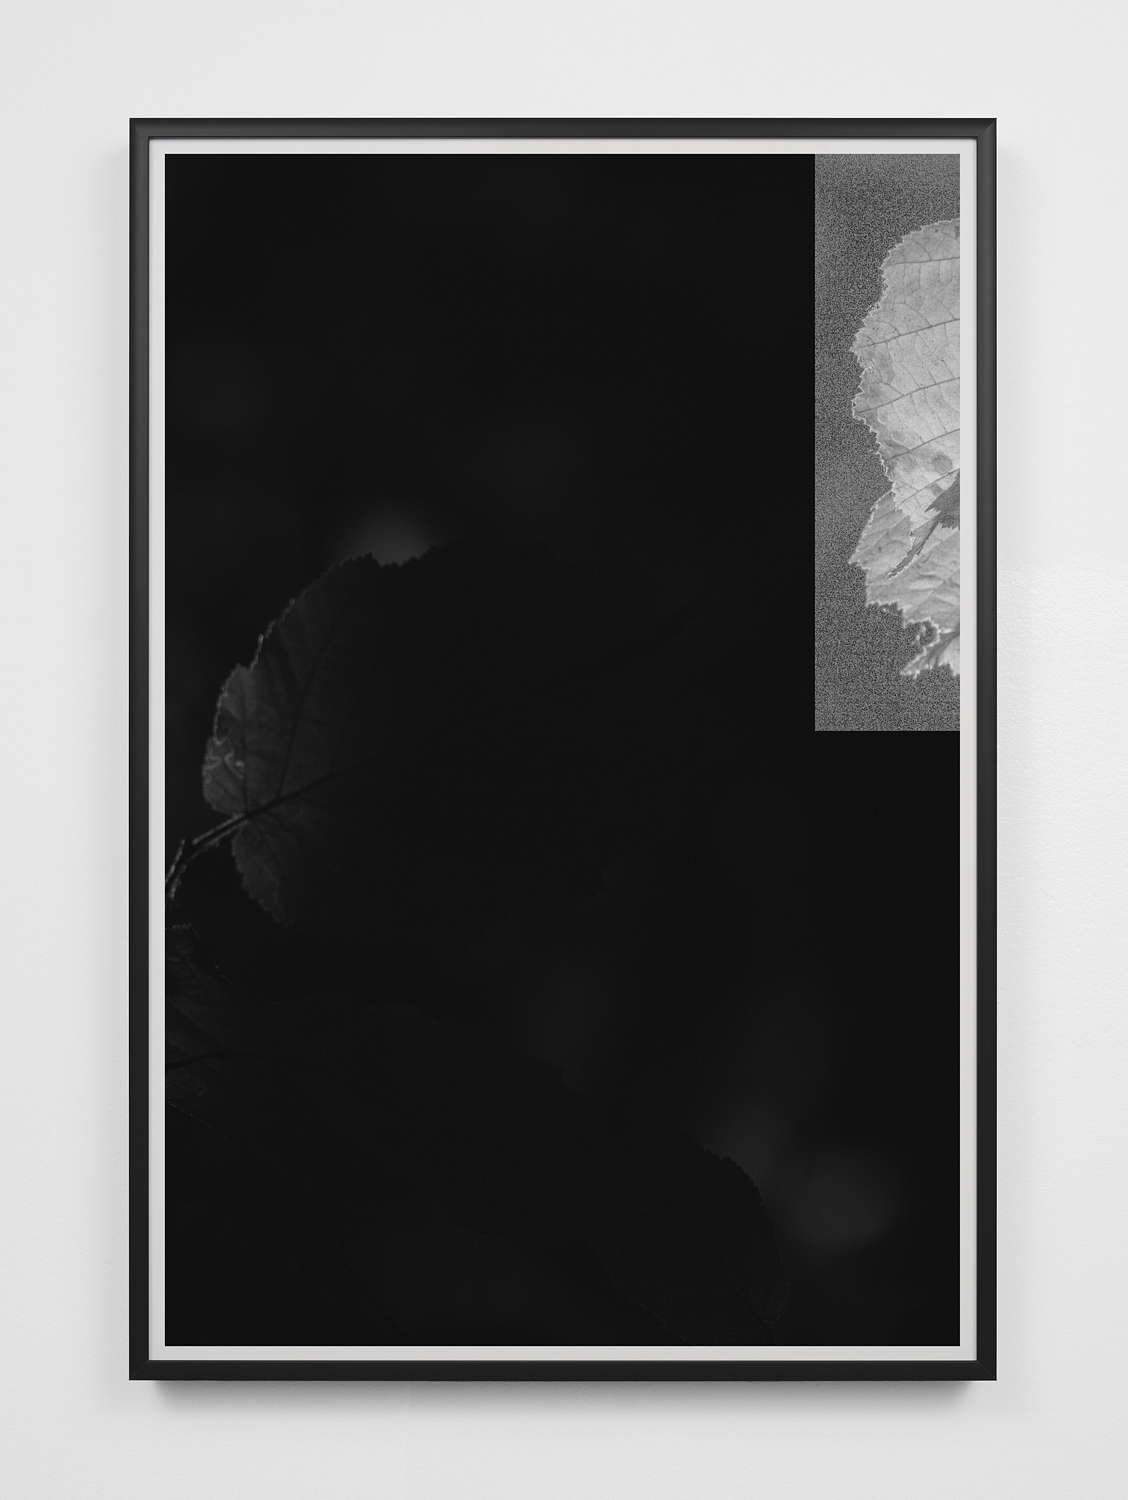 096:B-02/P-03 , 2018  Archival pigment print on fiber paper 19 x 13 inches (Image: 18 x 12 inches) Black aluminum frame, anti-reflective museum glass